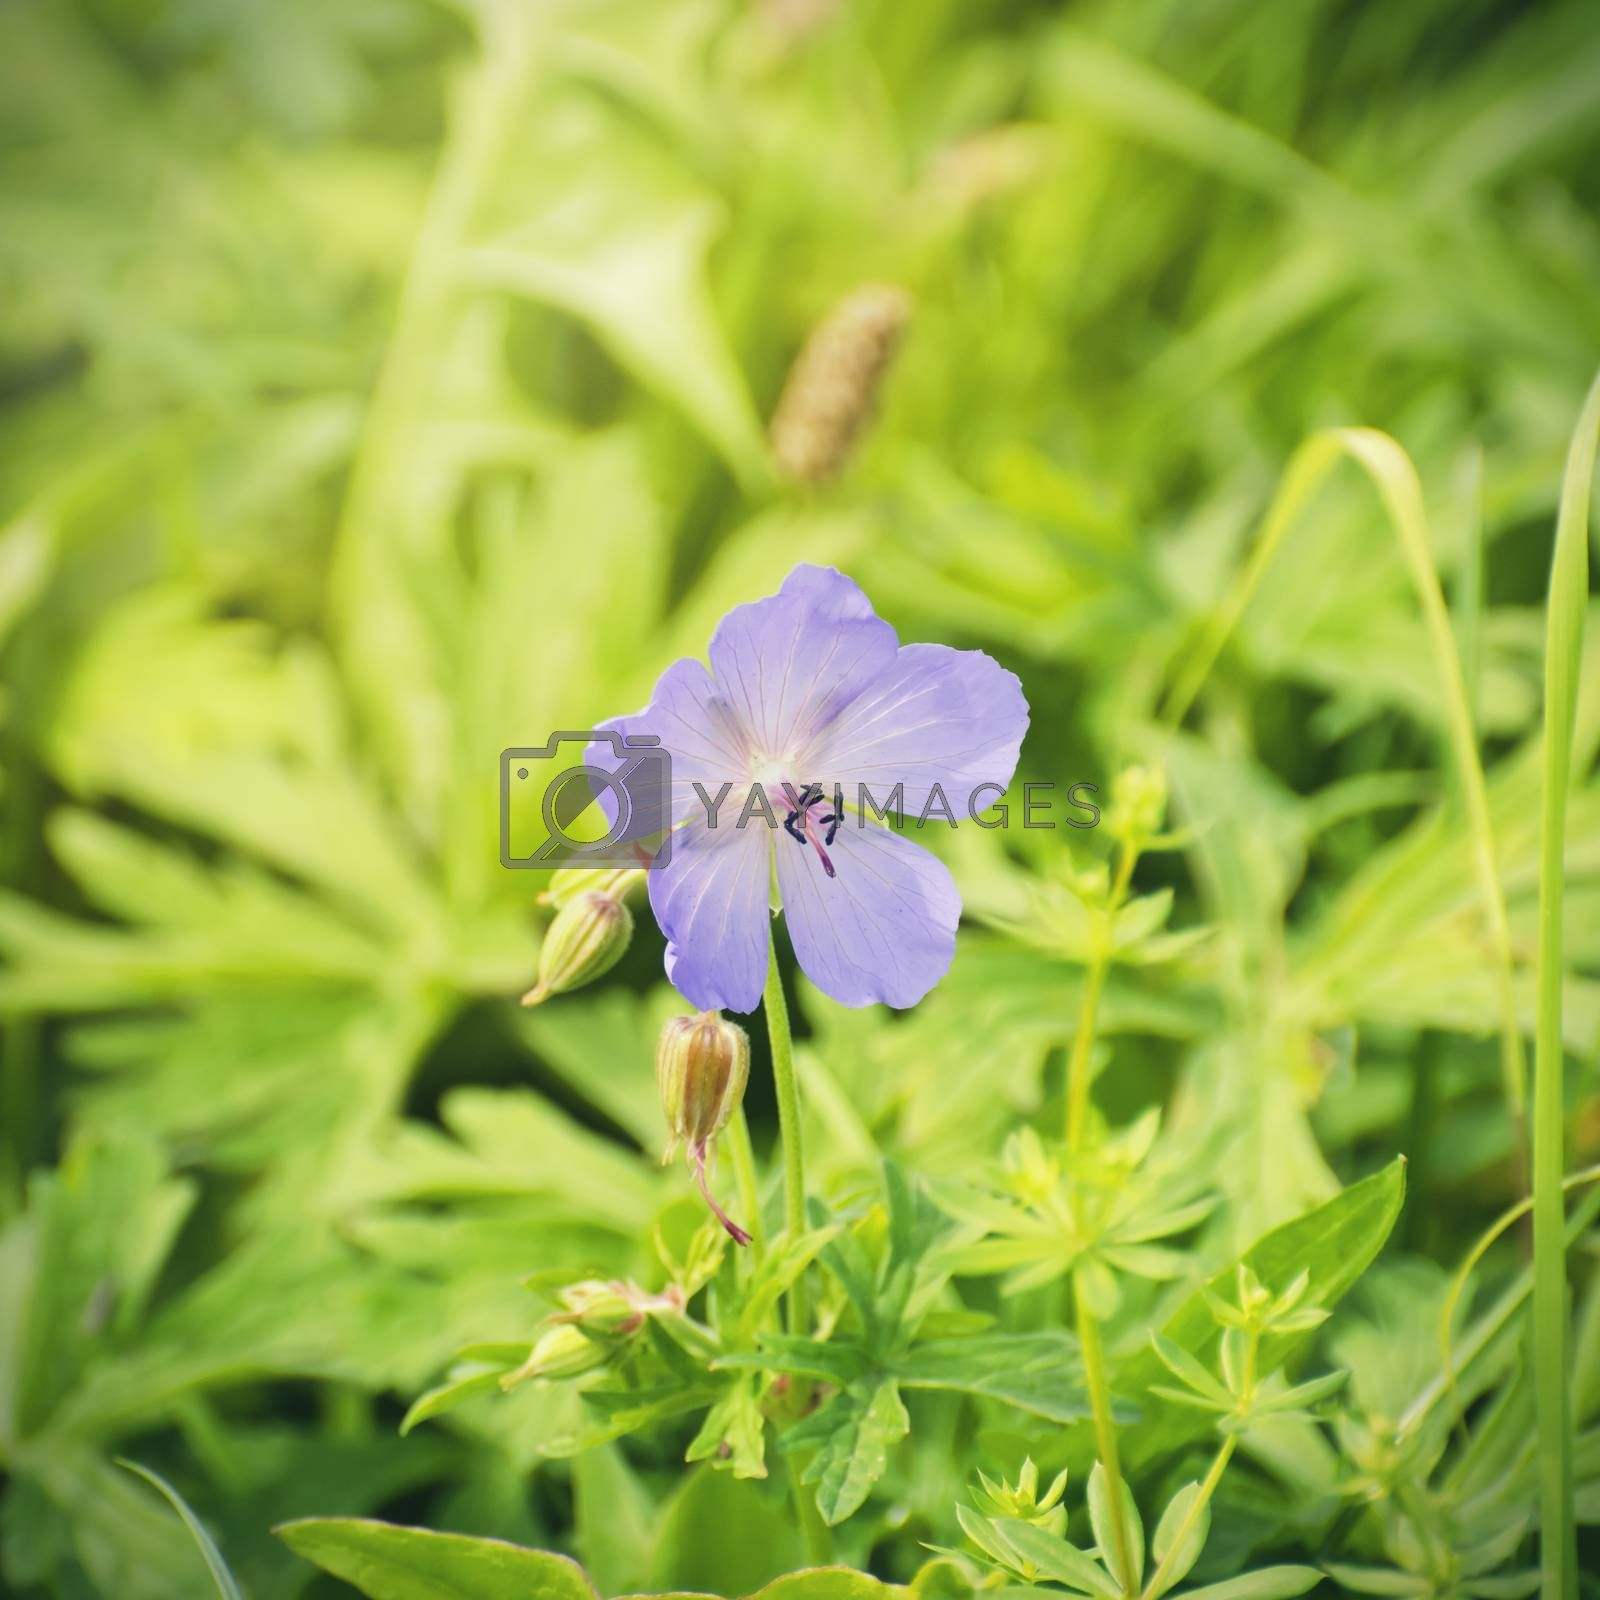 Flower Over Natural Background in Summertime